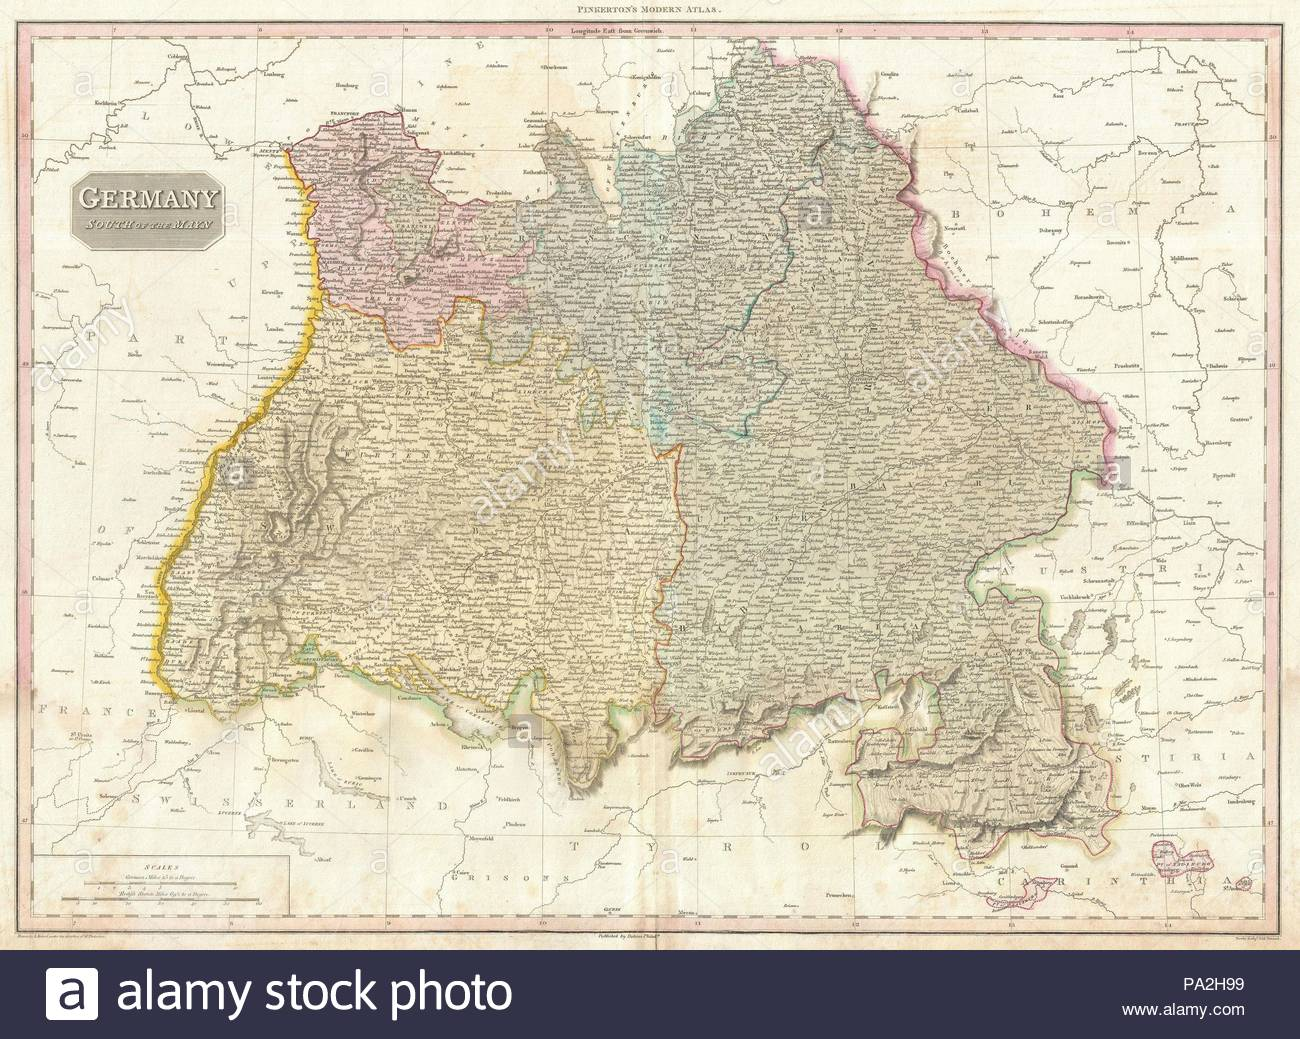 1818, Pinkerton Map of Southwestern Germany, Bavaria, Swabia, John